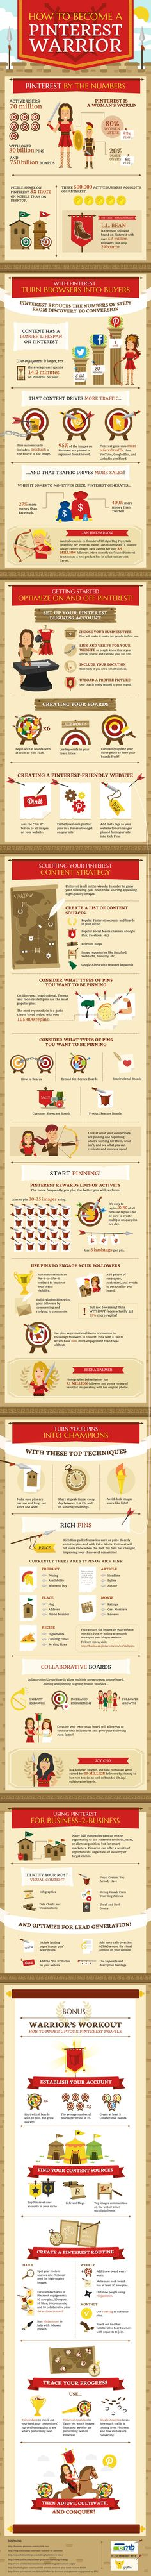 How to Become a Pinterest Warrior    #infographic #Pinterest #SocialMedia